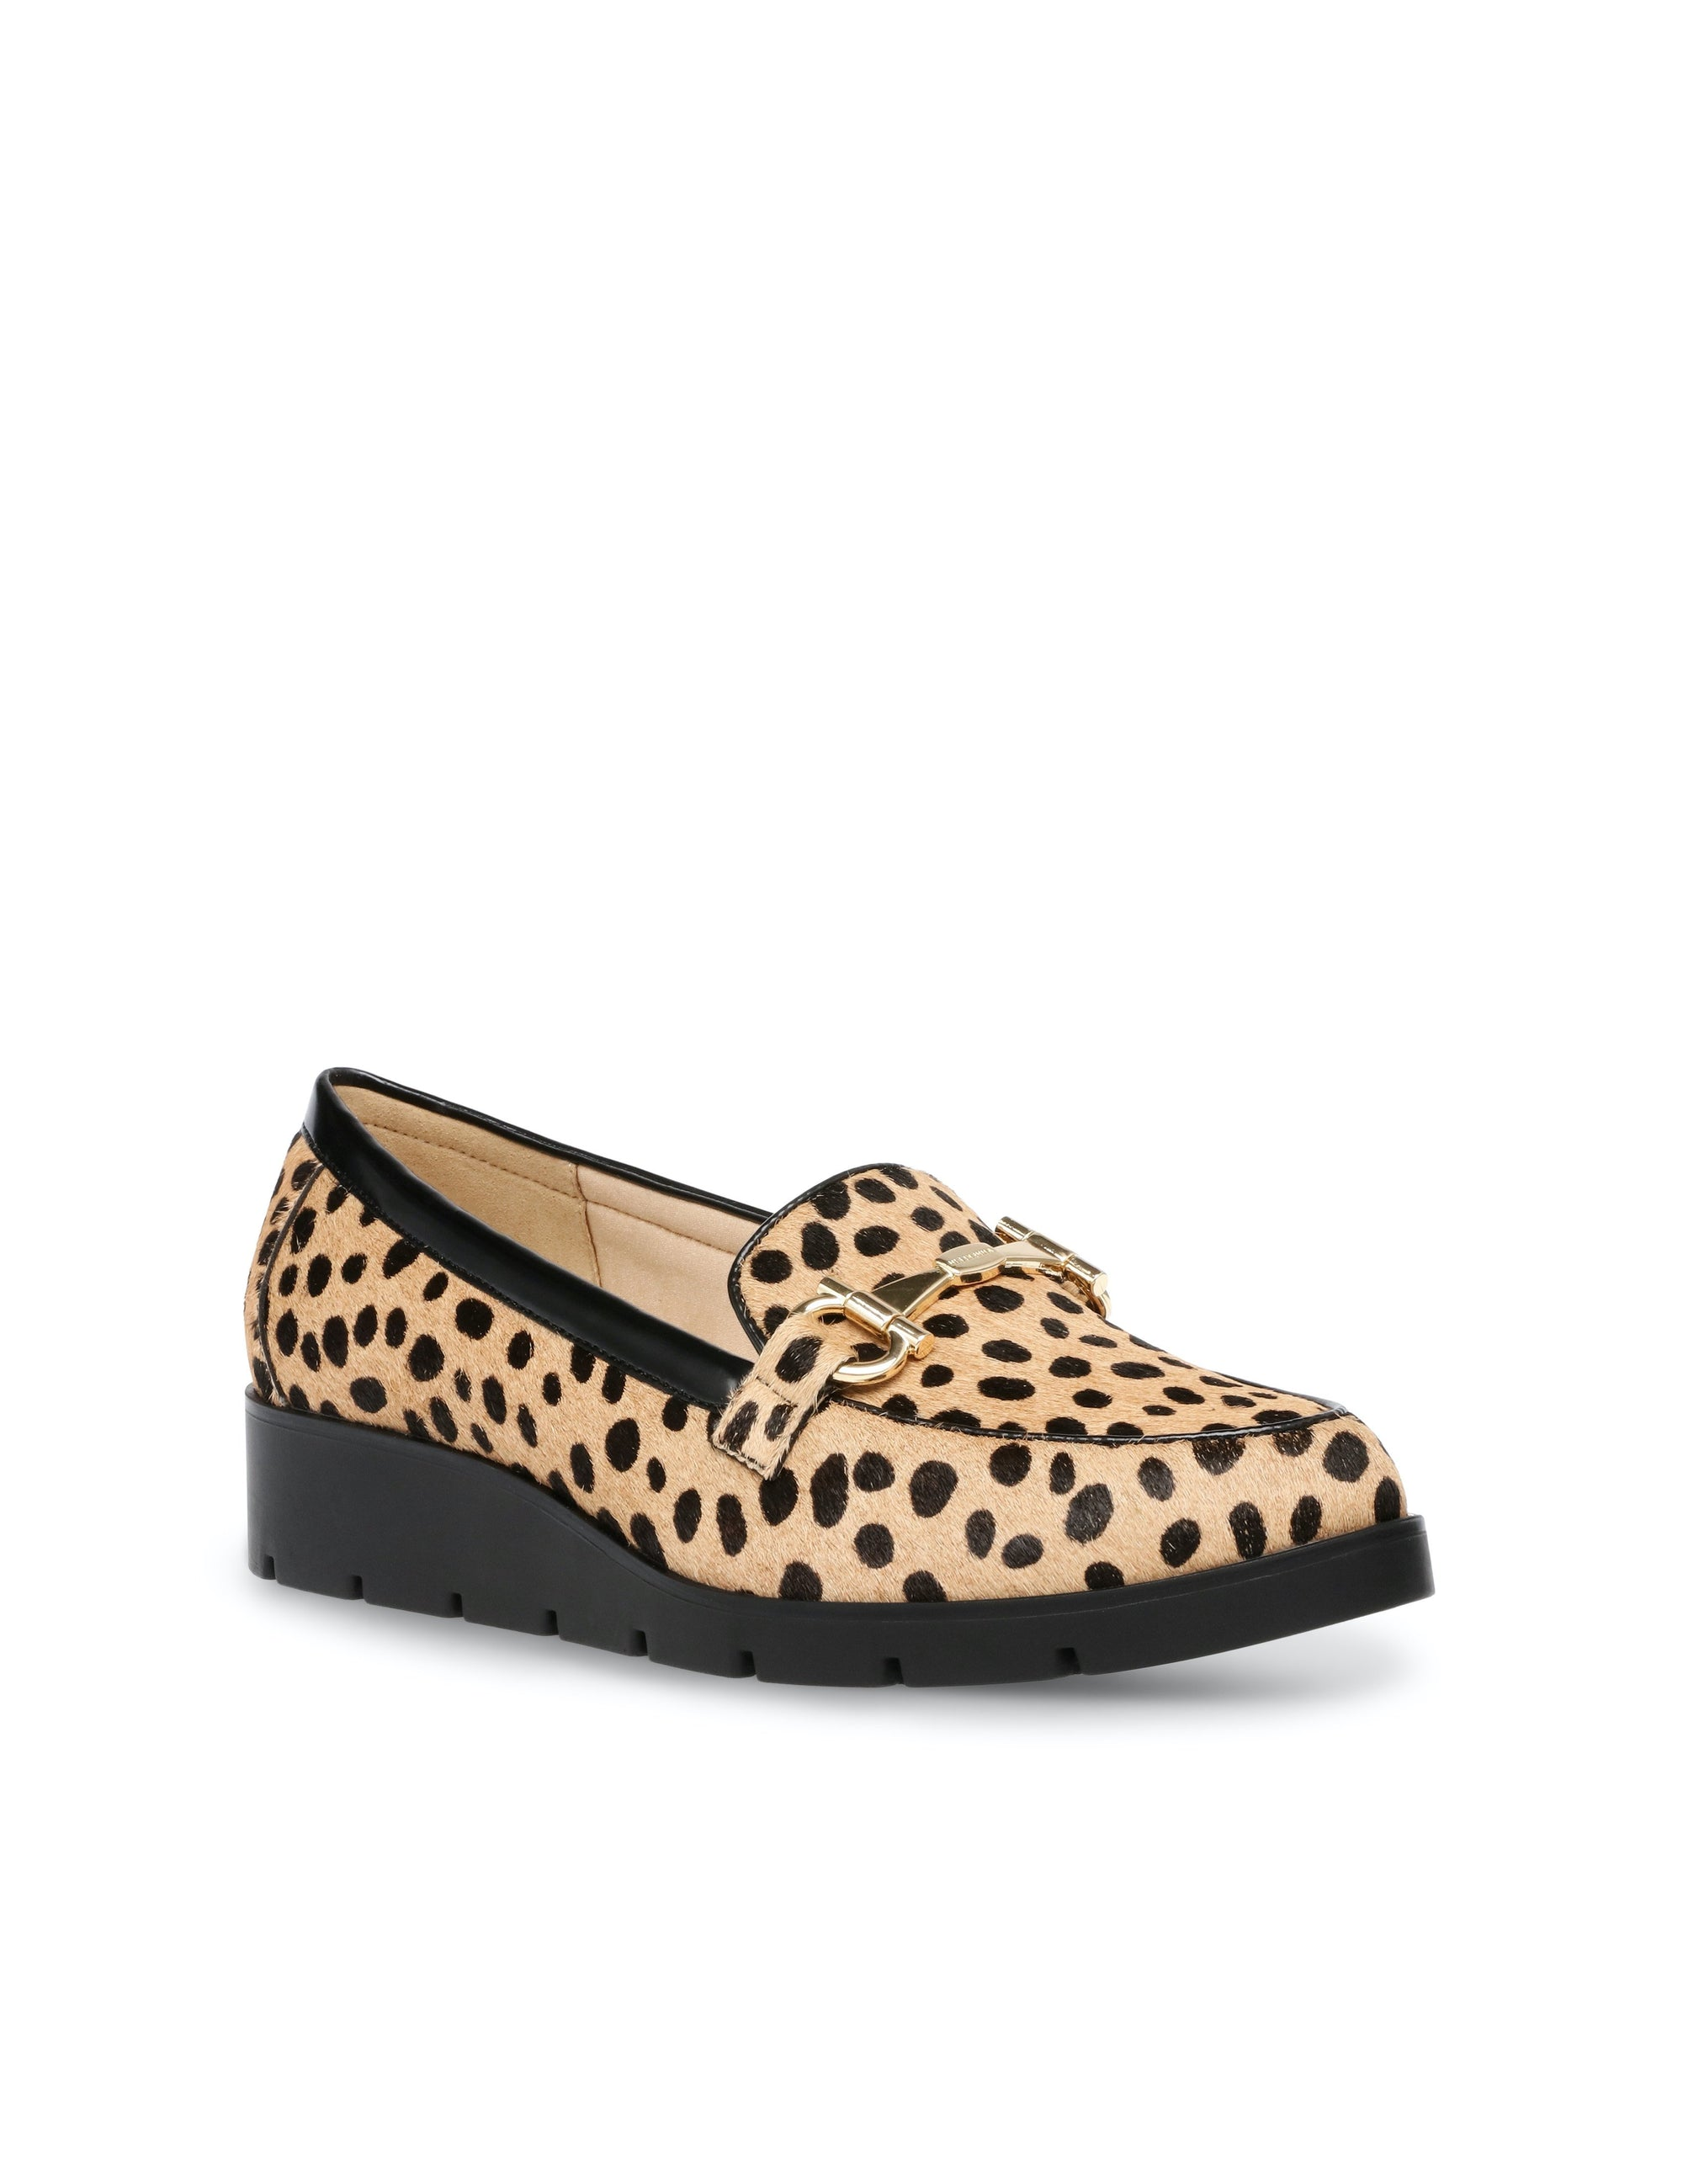 Anne Klein Lalita Loafers Leopard Calf Hair